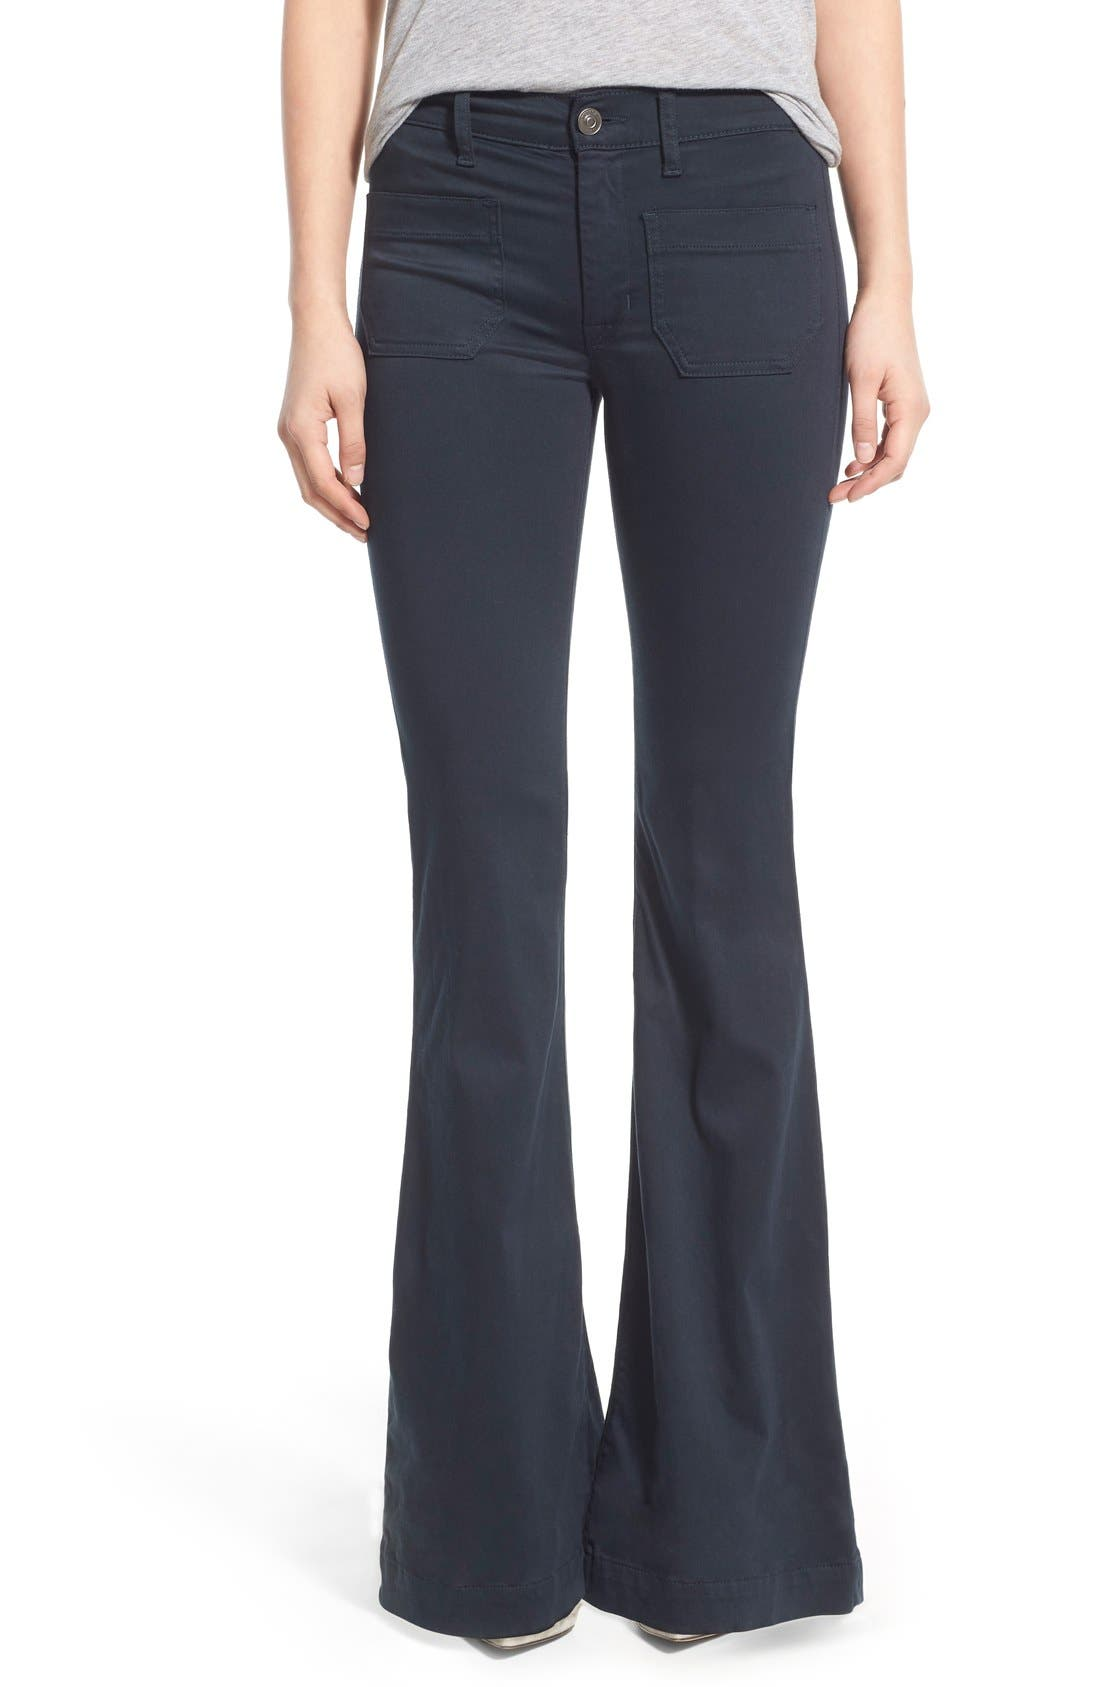 'Taylor' Flare Jeans,                         Main,                         color, Midnight